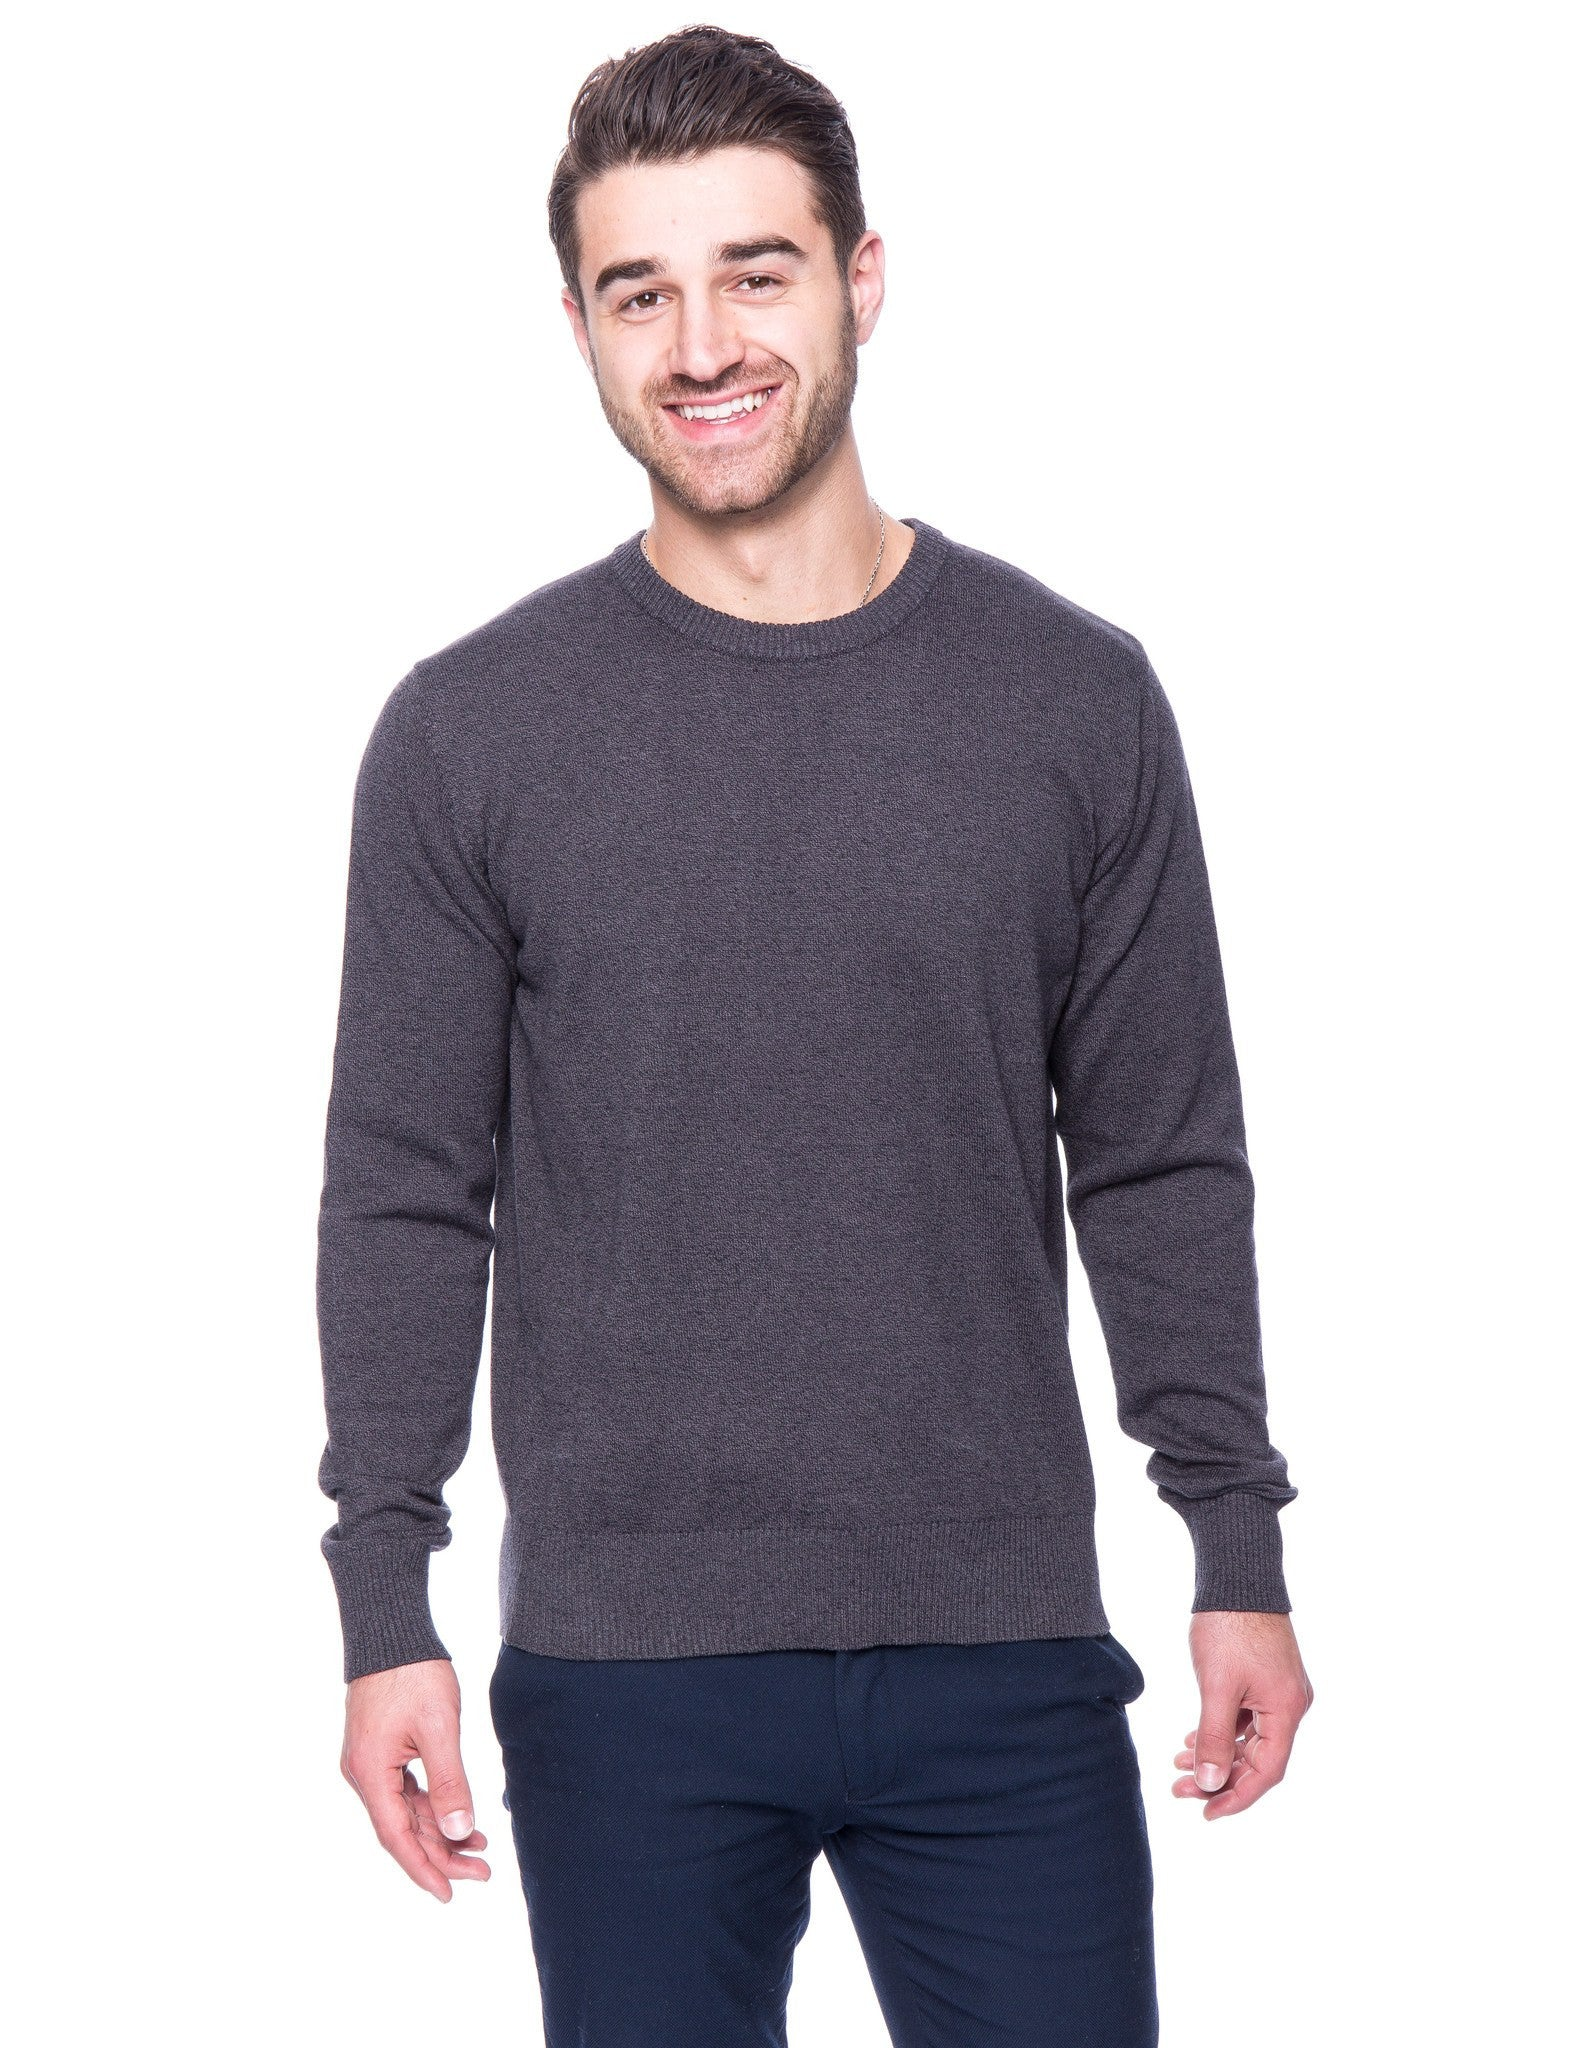 Cotton Crew Neck Sweater - Marl Charcoal/Black